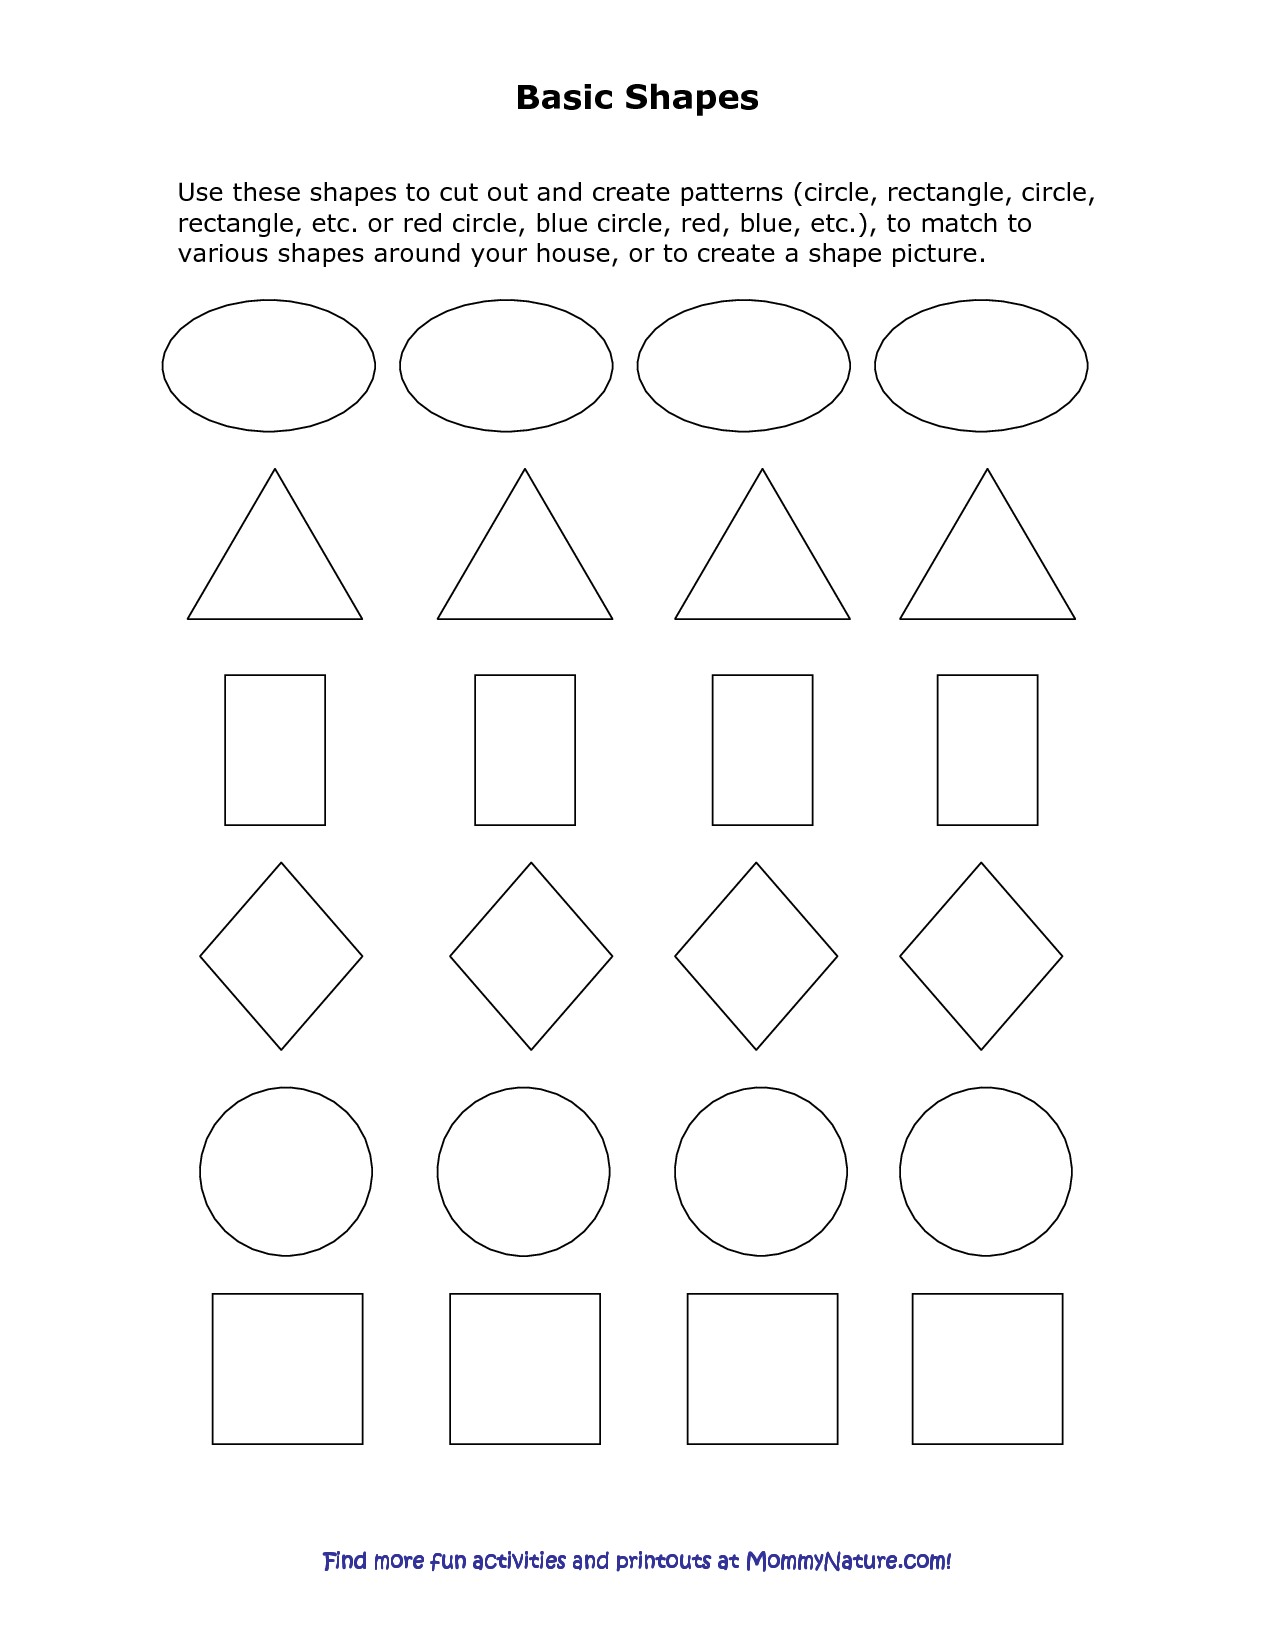 Printable Shapes To Cut Out That Are Resource